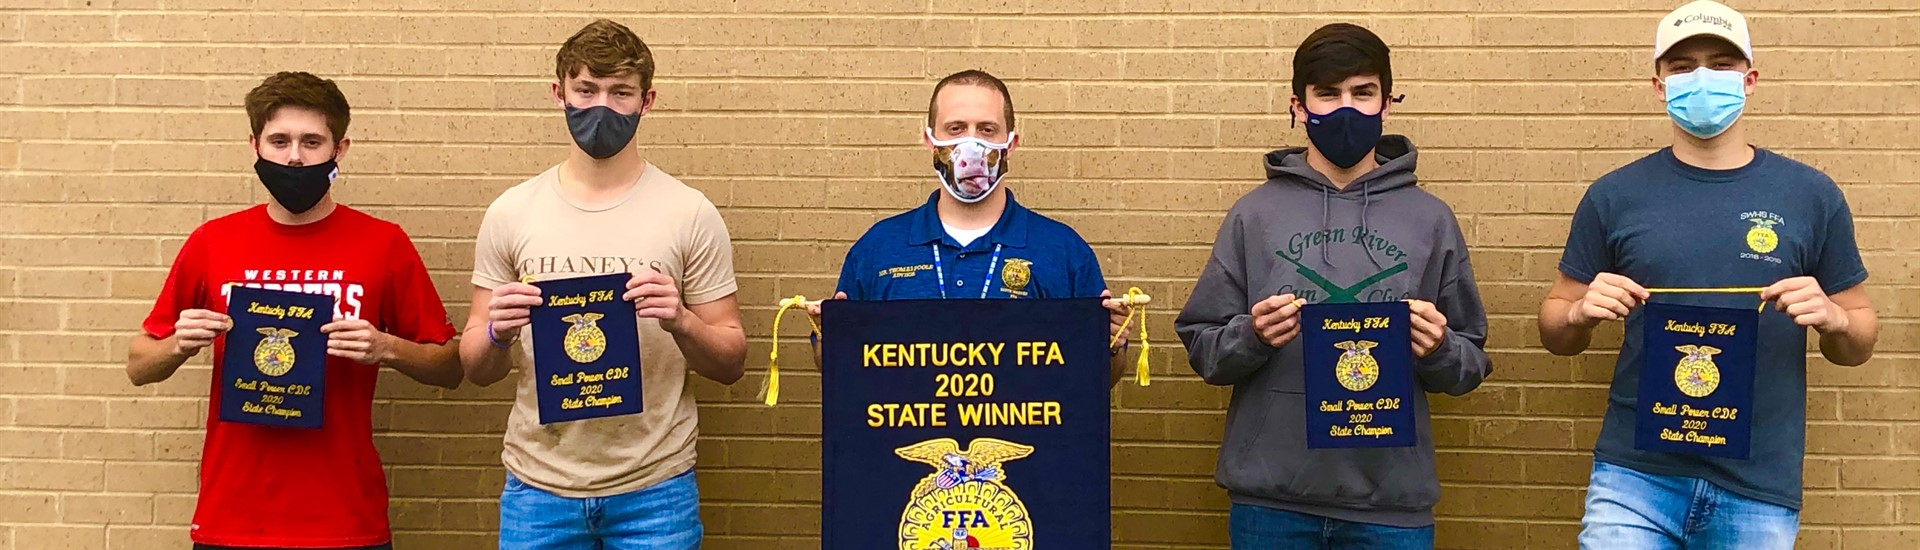 FFA Small Engine Team - 1st Place!